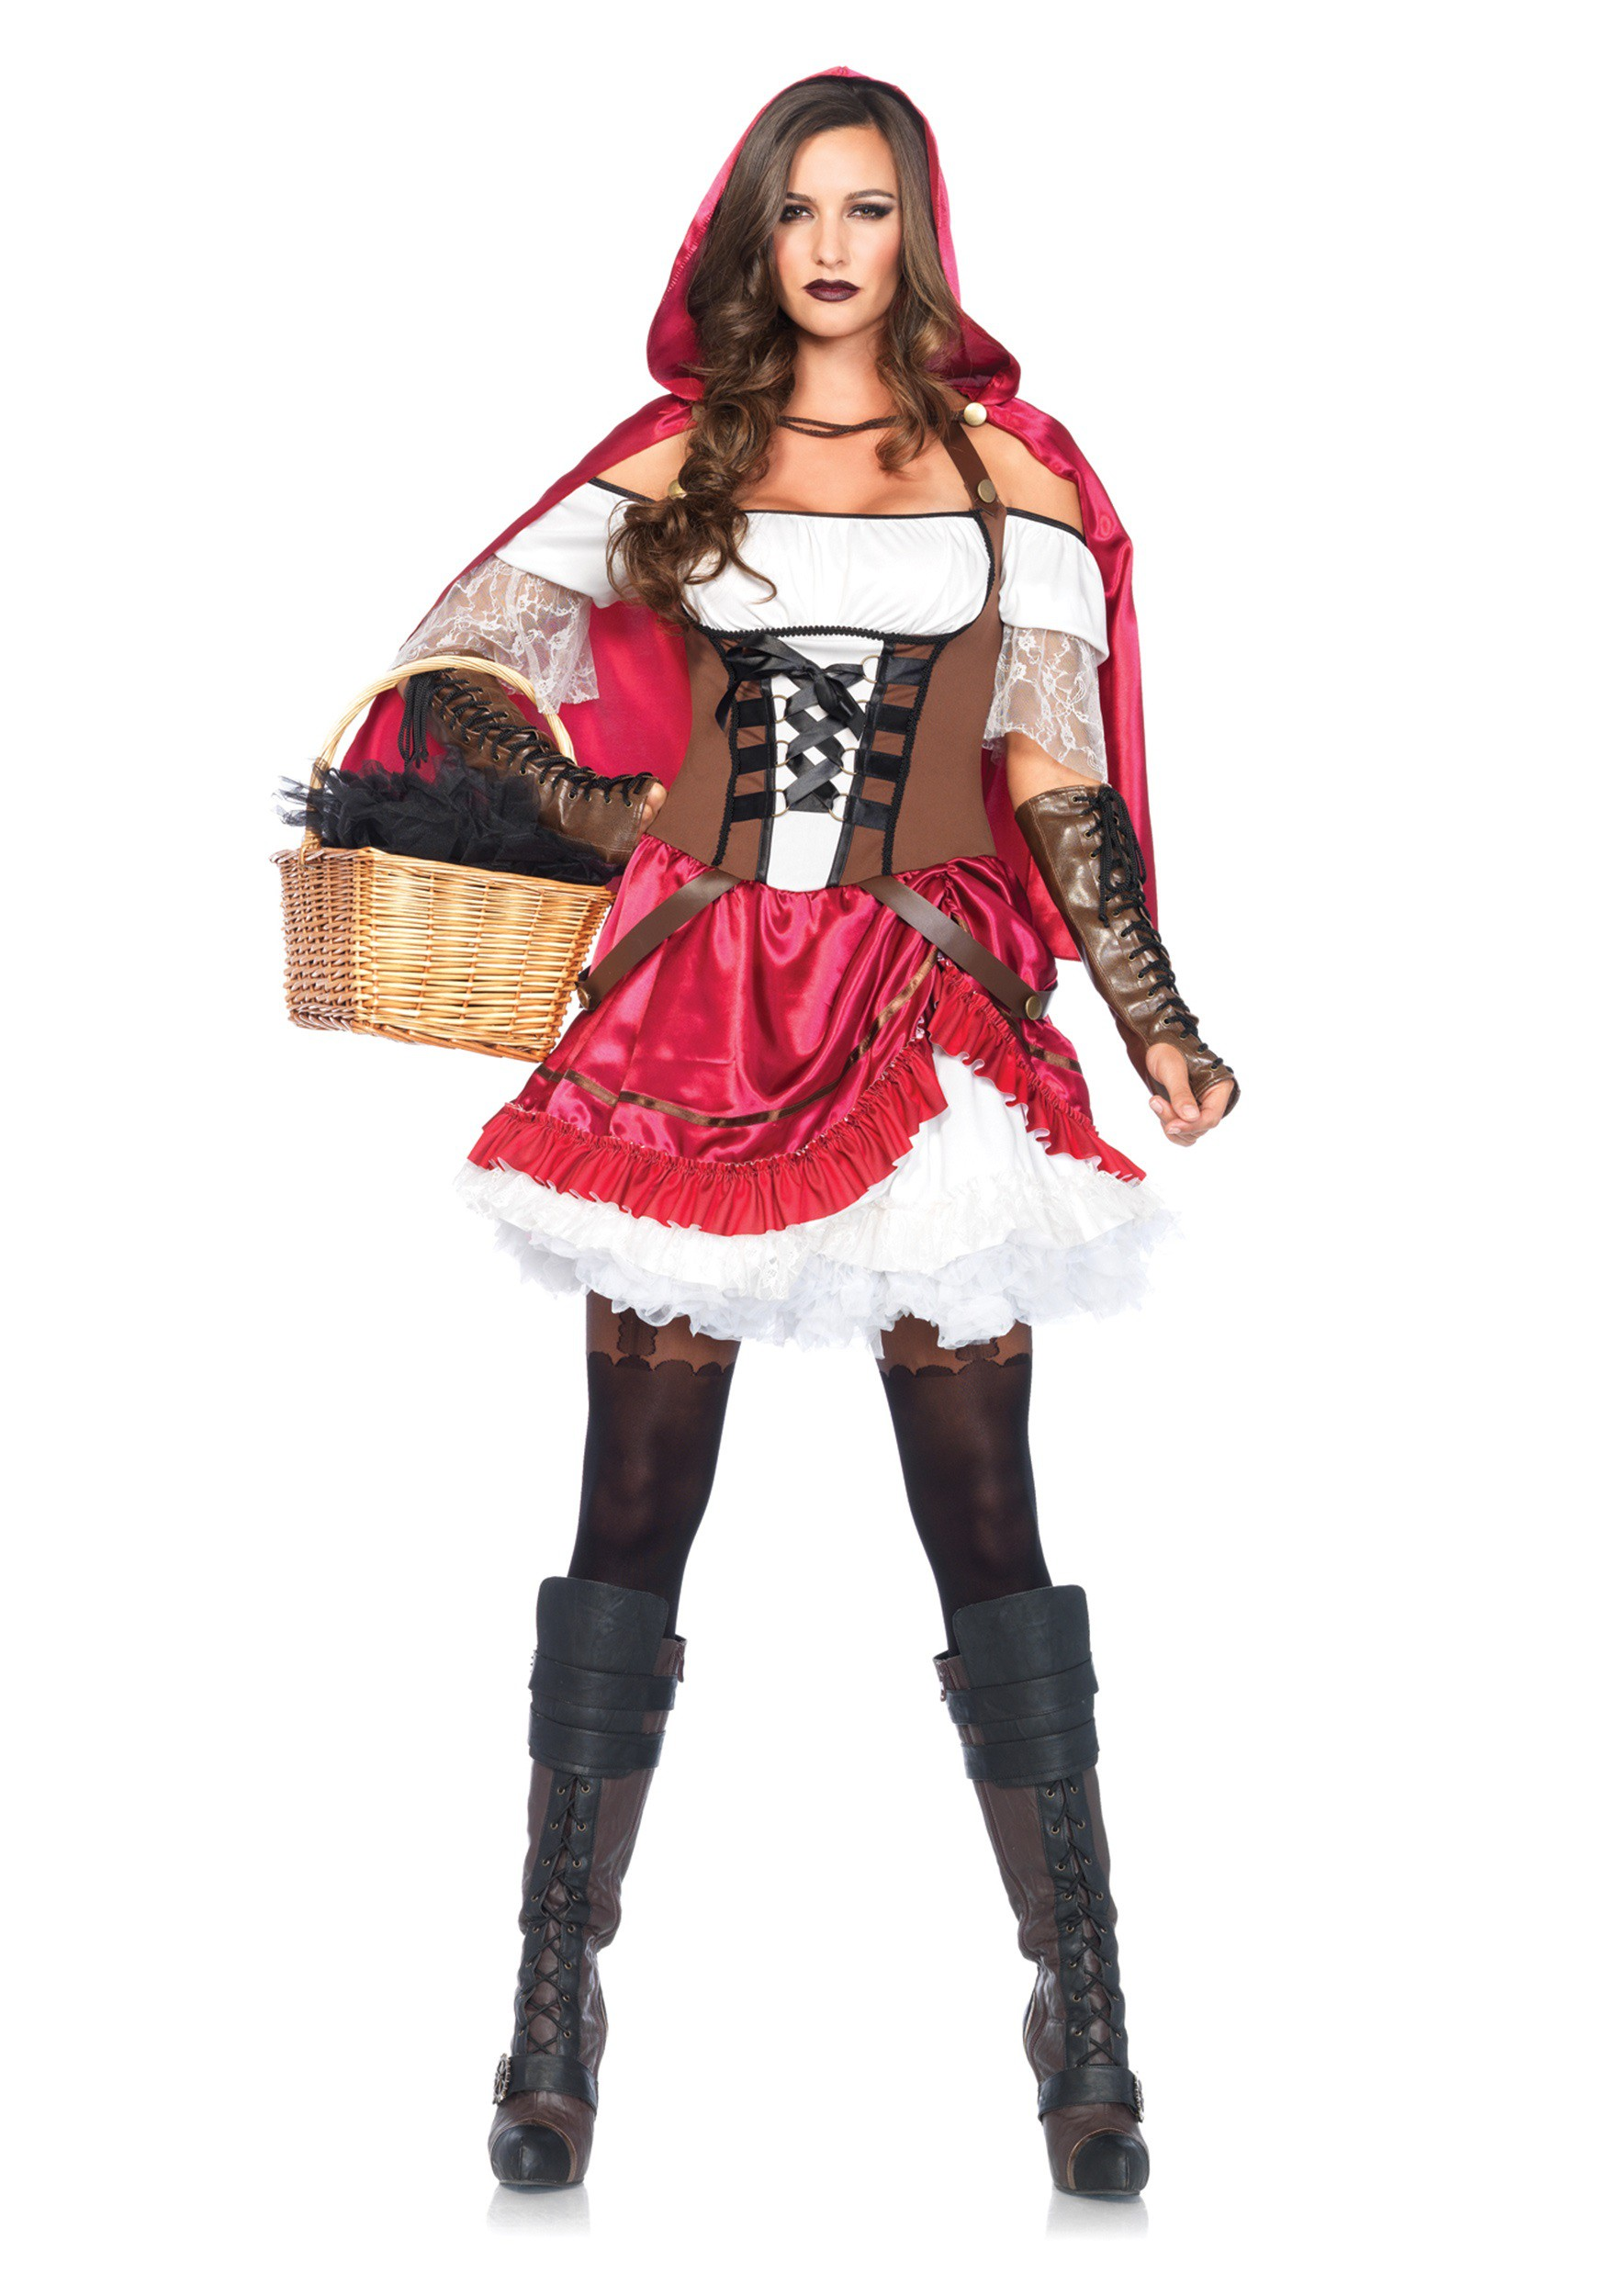 women 39 s rebel red riding hood costume. Black Bedroom Furniture Sets. Home Design Ideas